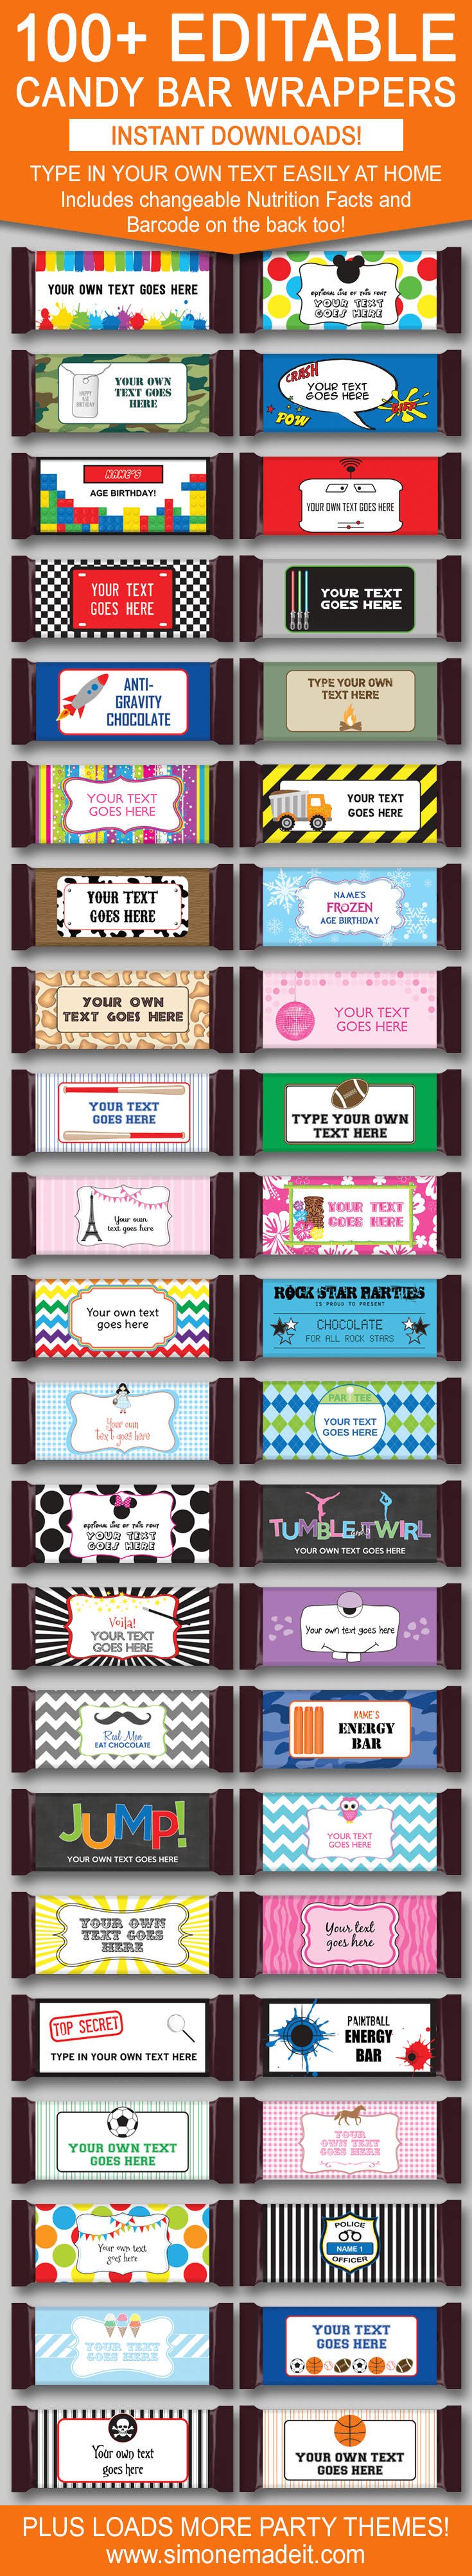 Diy Candy Bar Wrapper Templates Candy Wrappers Treat Holders